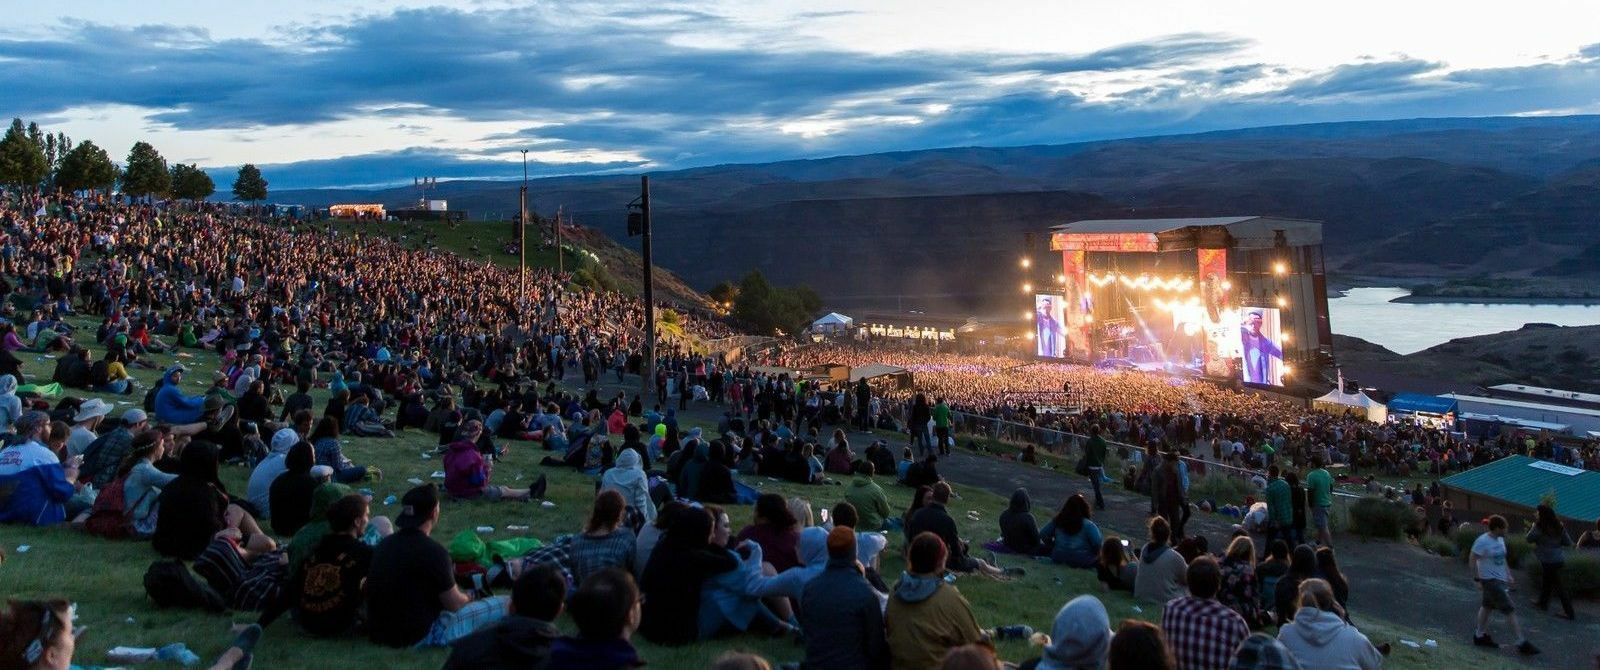 Sasquatch Music Festival 3 Day Pass with Twenty One Pilots, LCD Soundsystem, Chance The Rapper and more Tickets (May 26-28)